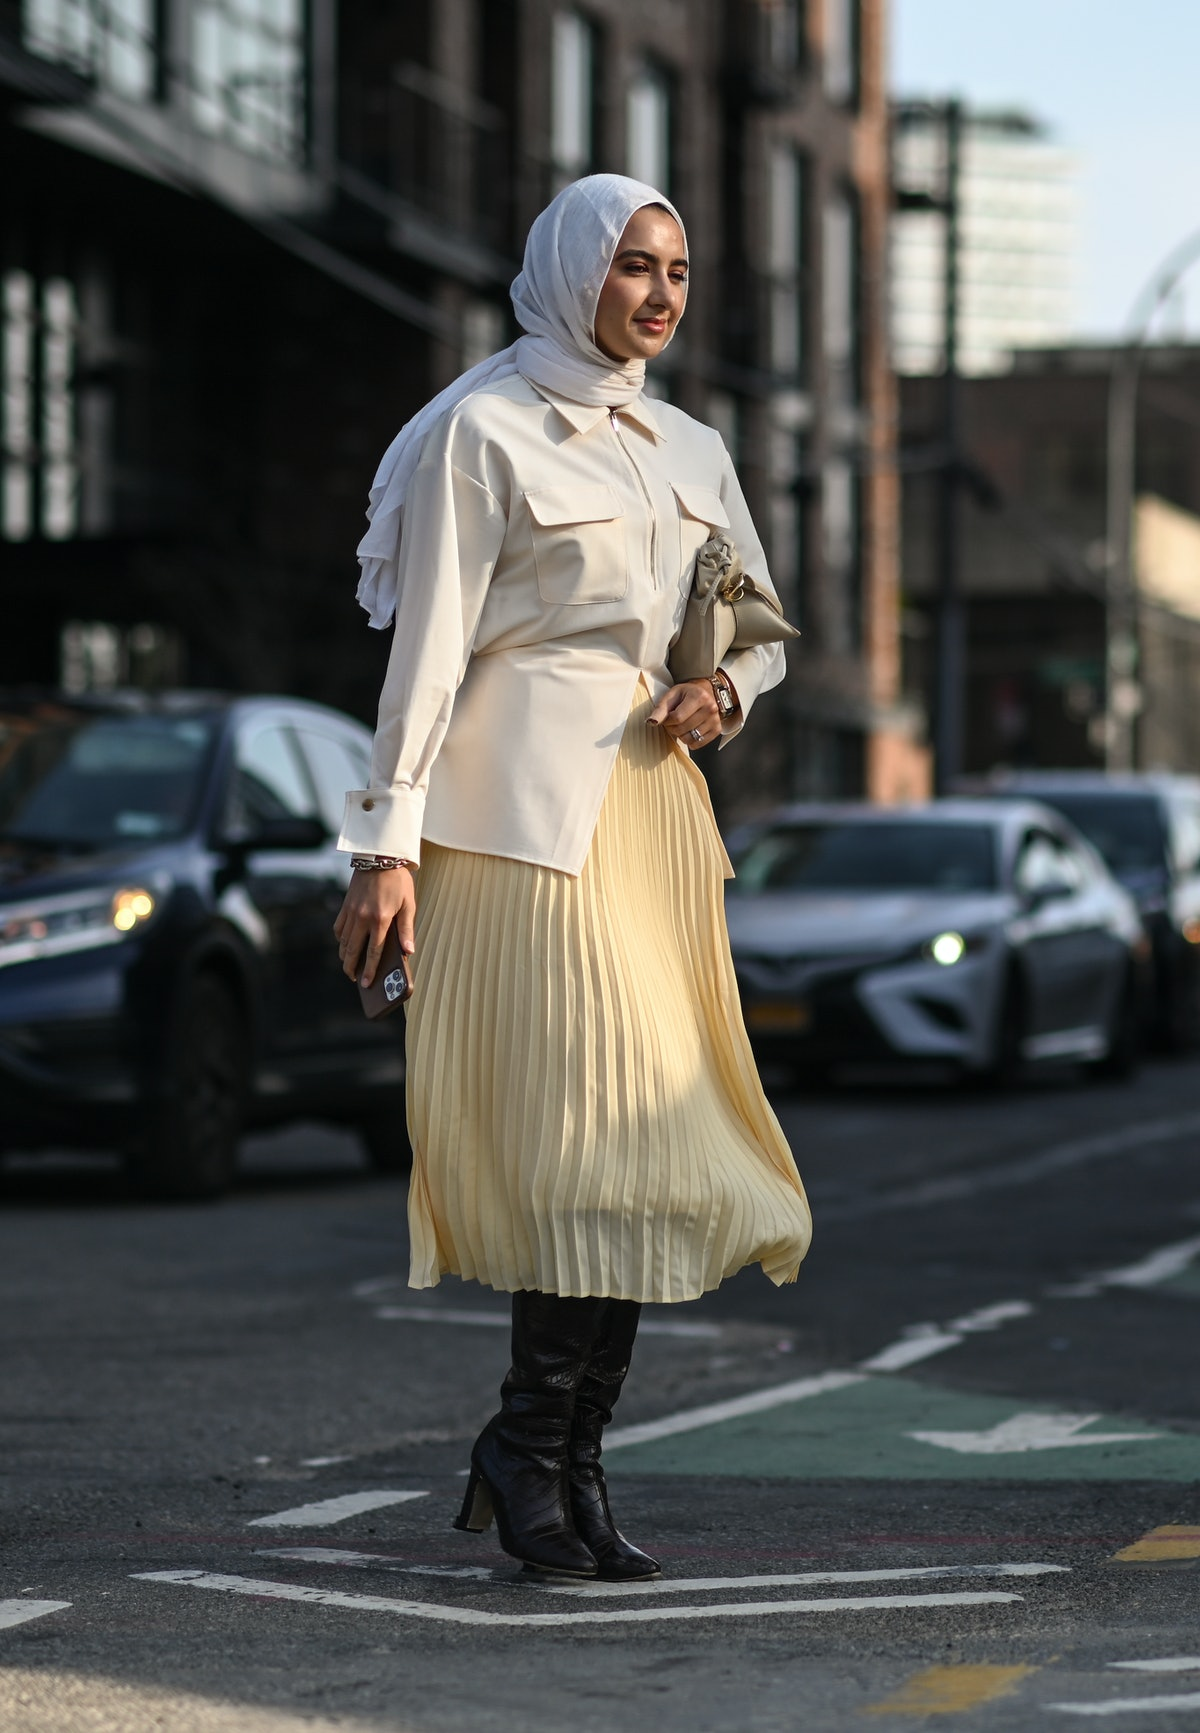 Tall boots worn with a midi skirt.